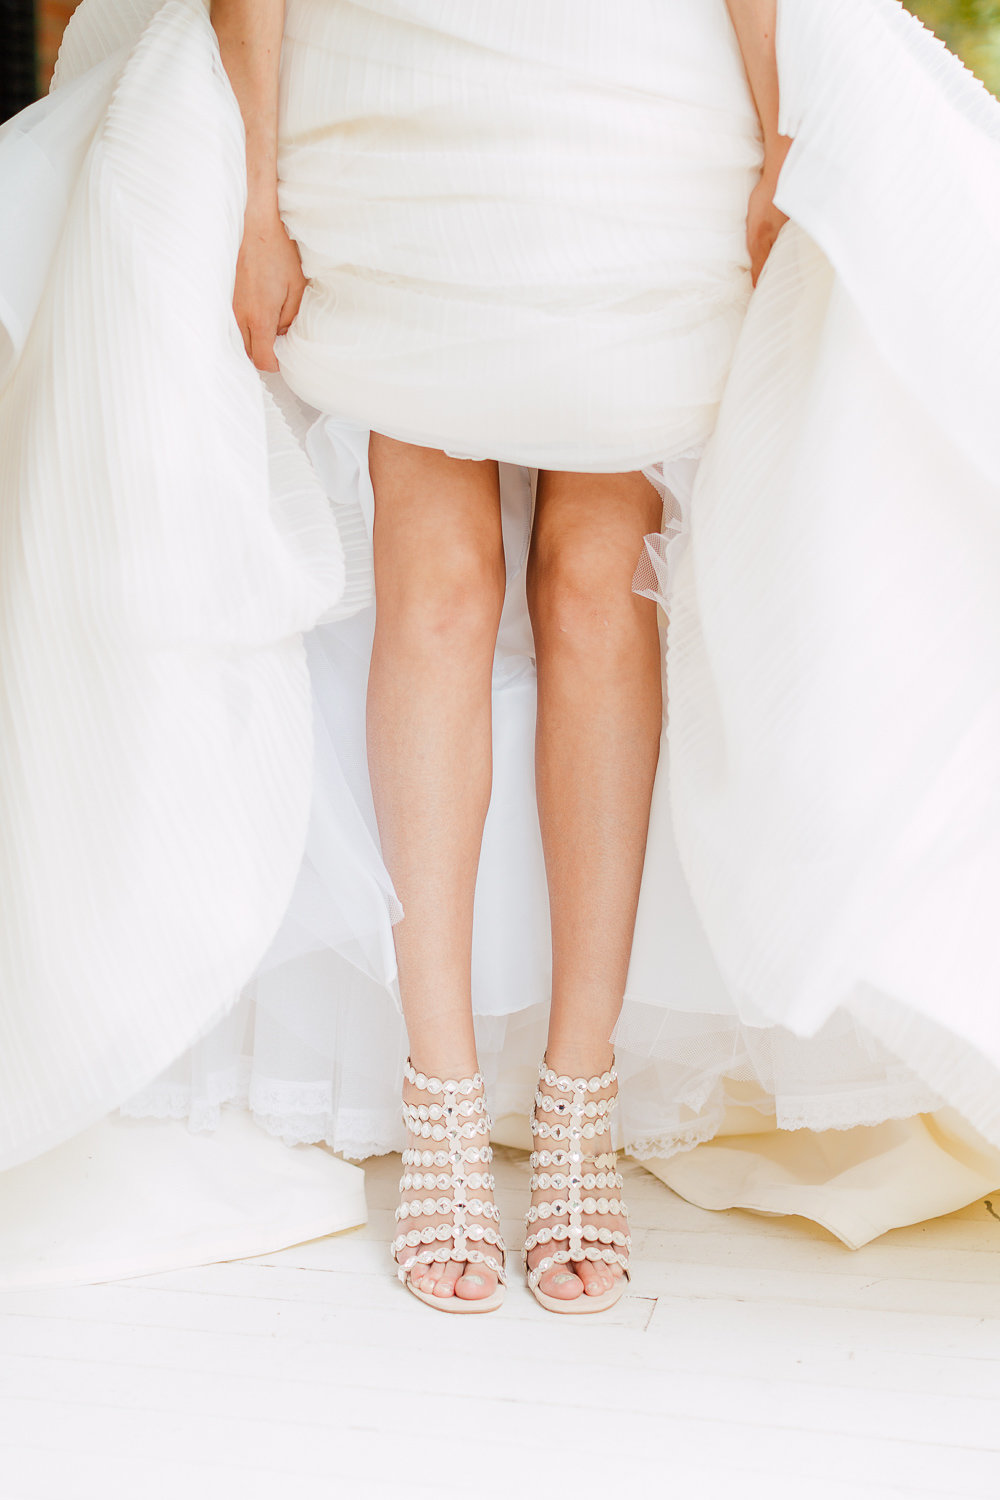 bridal shoes - photo by Purple Tree Photography http://ruffledblog.com/charming-wine-country-wedding-at-kurtz-orchard